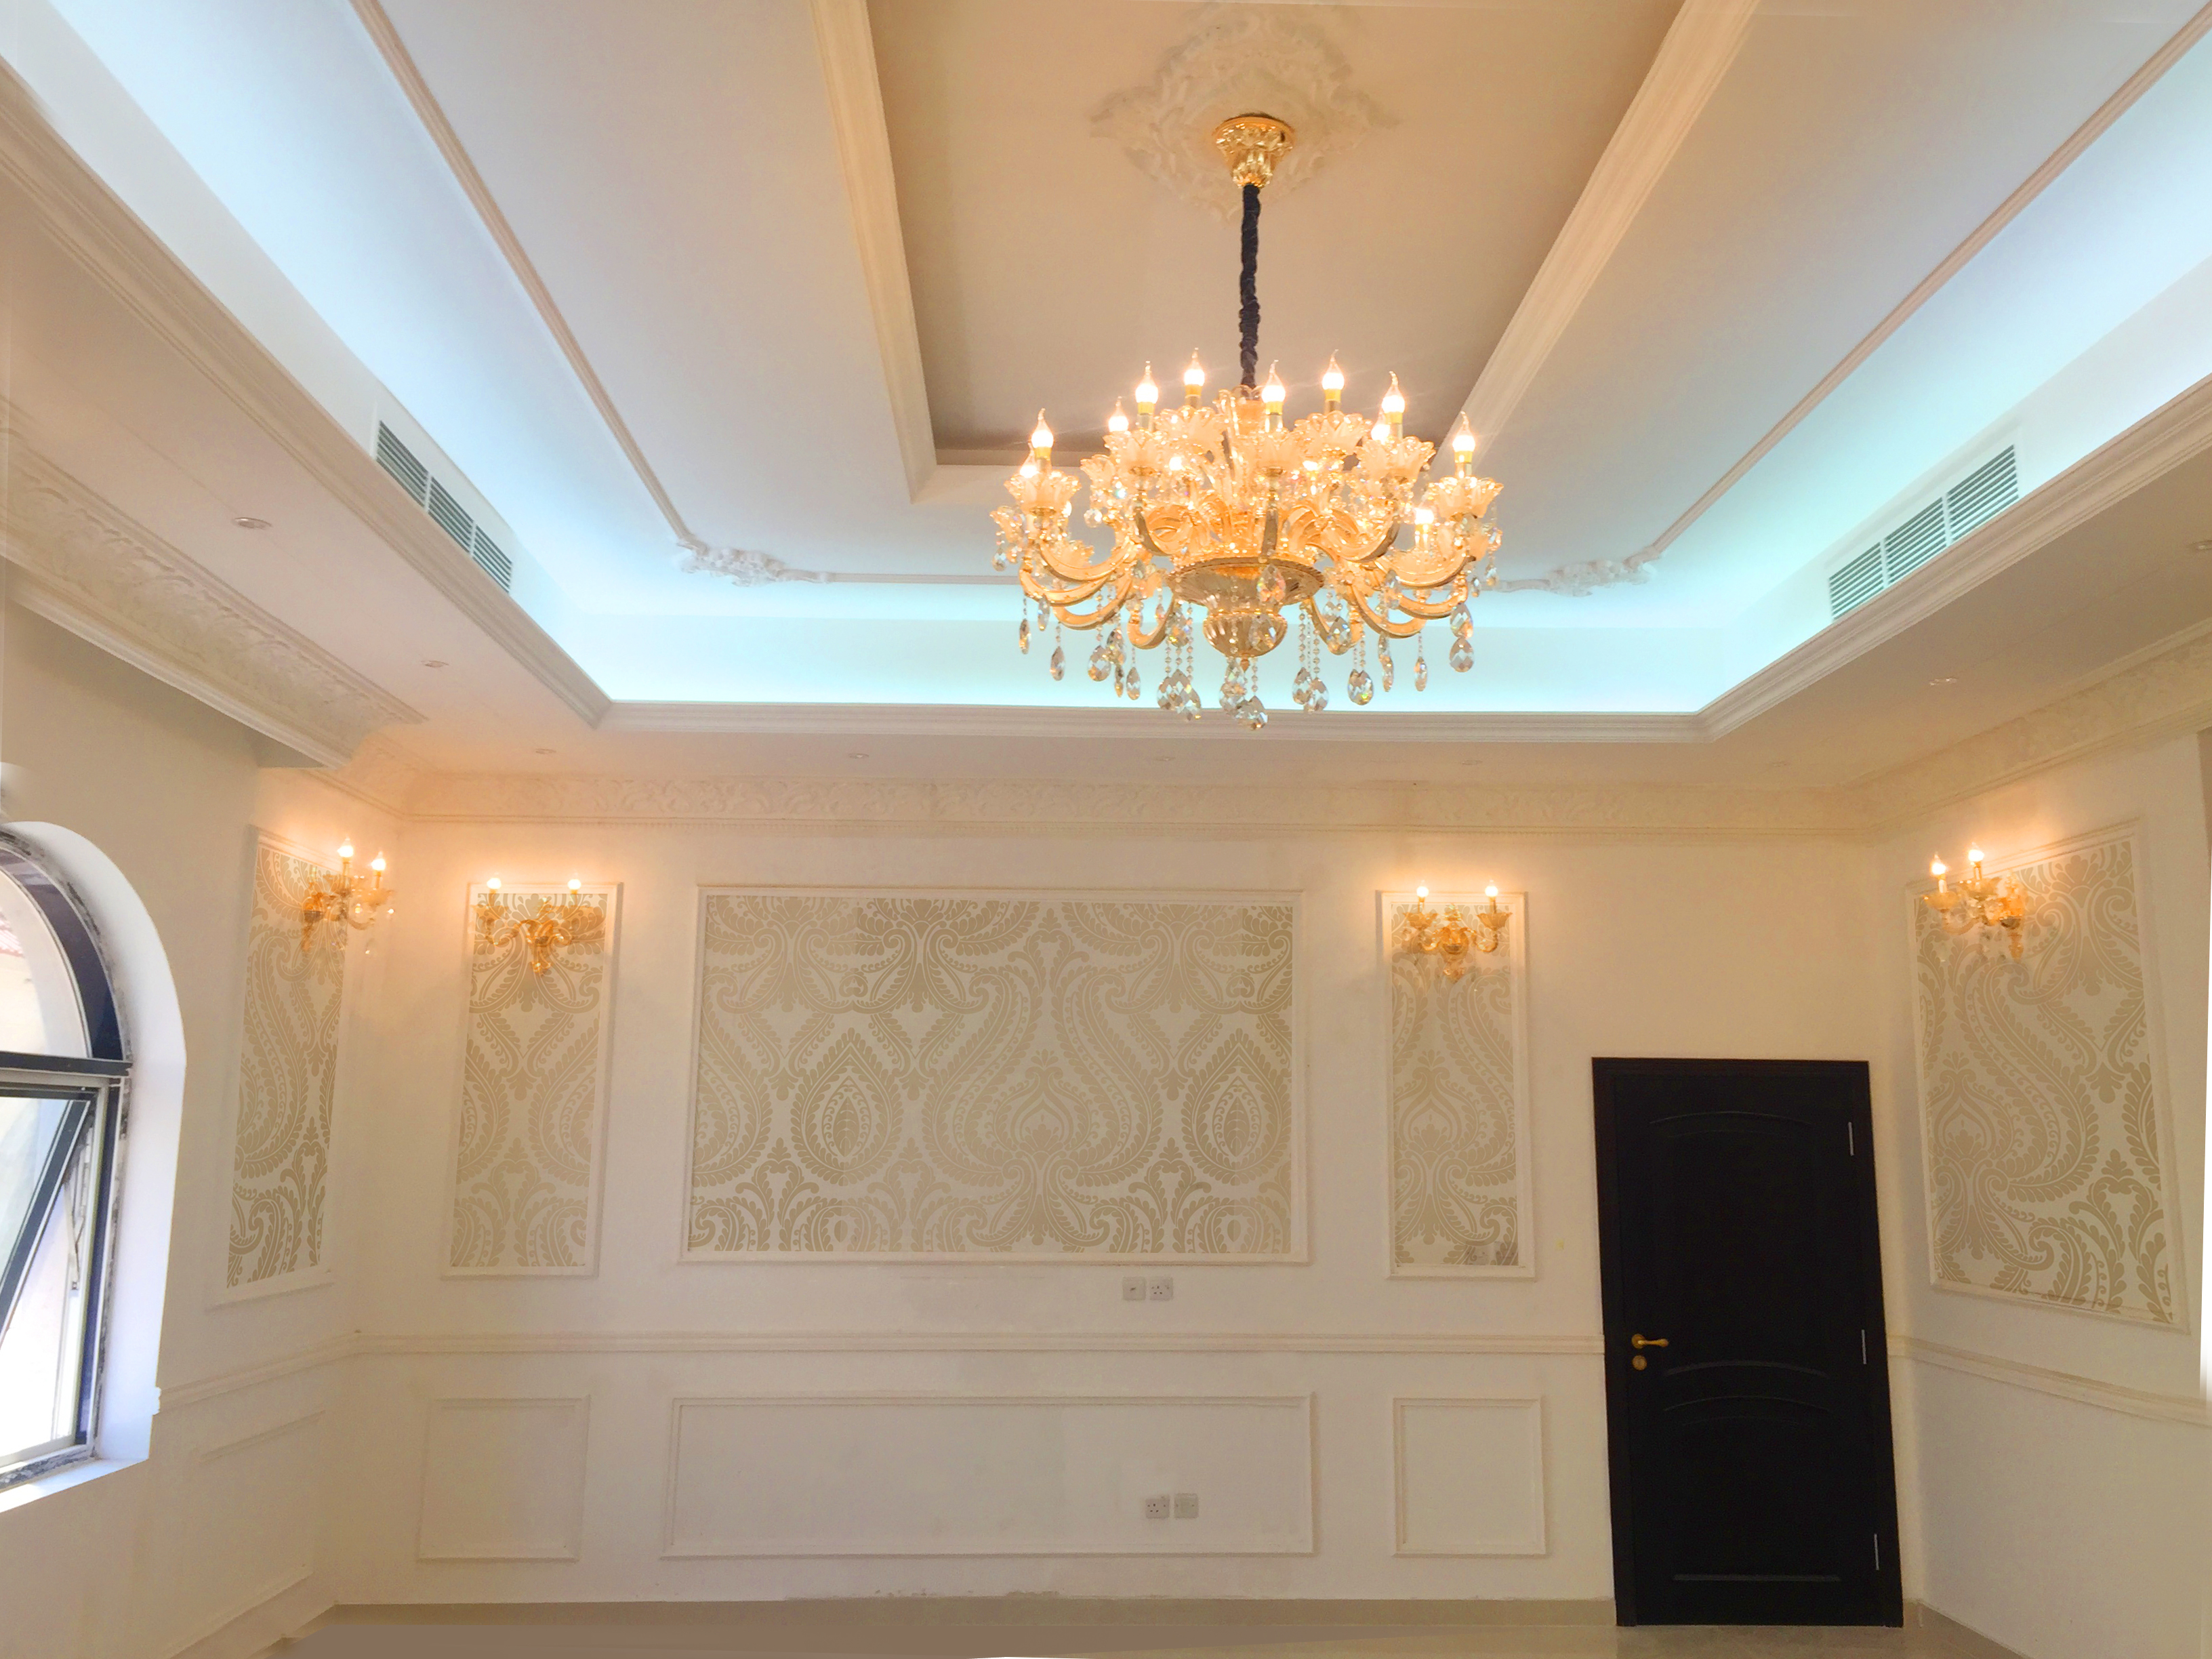 Jewel interior design uae dubai abudhabi sharjah ajman for Dining hall interior design